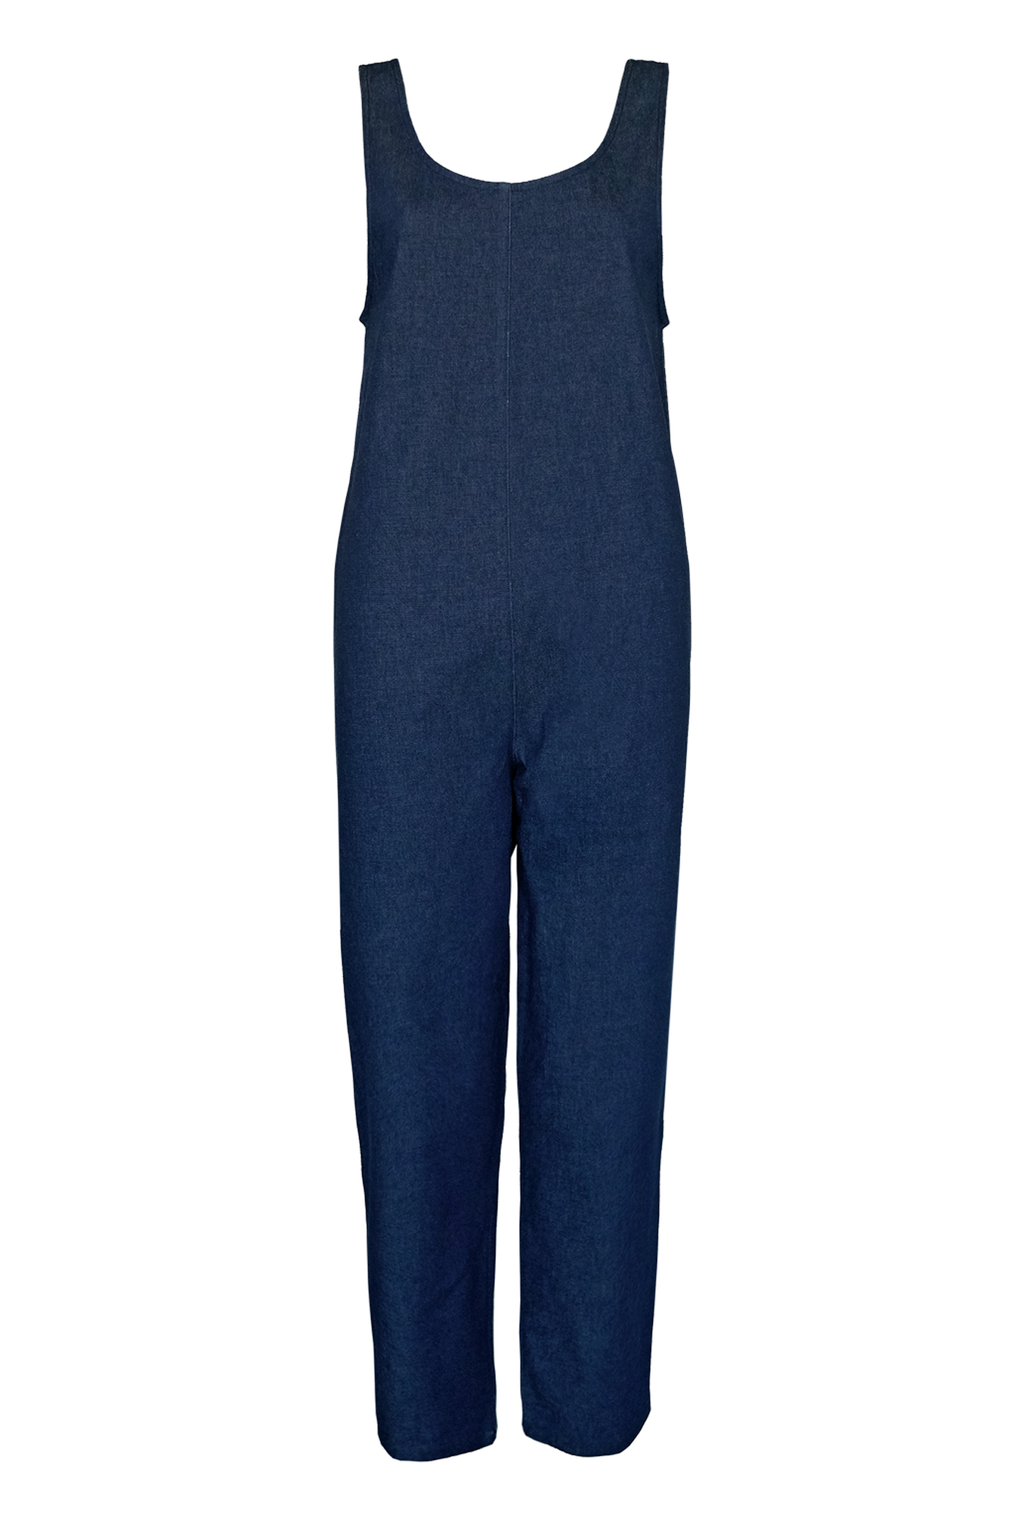 Denim Stretch Jumpsuit - Dark Blue